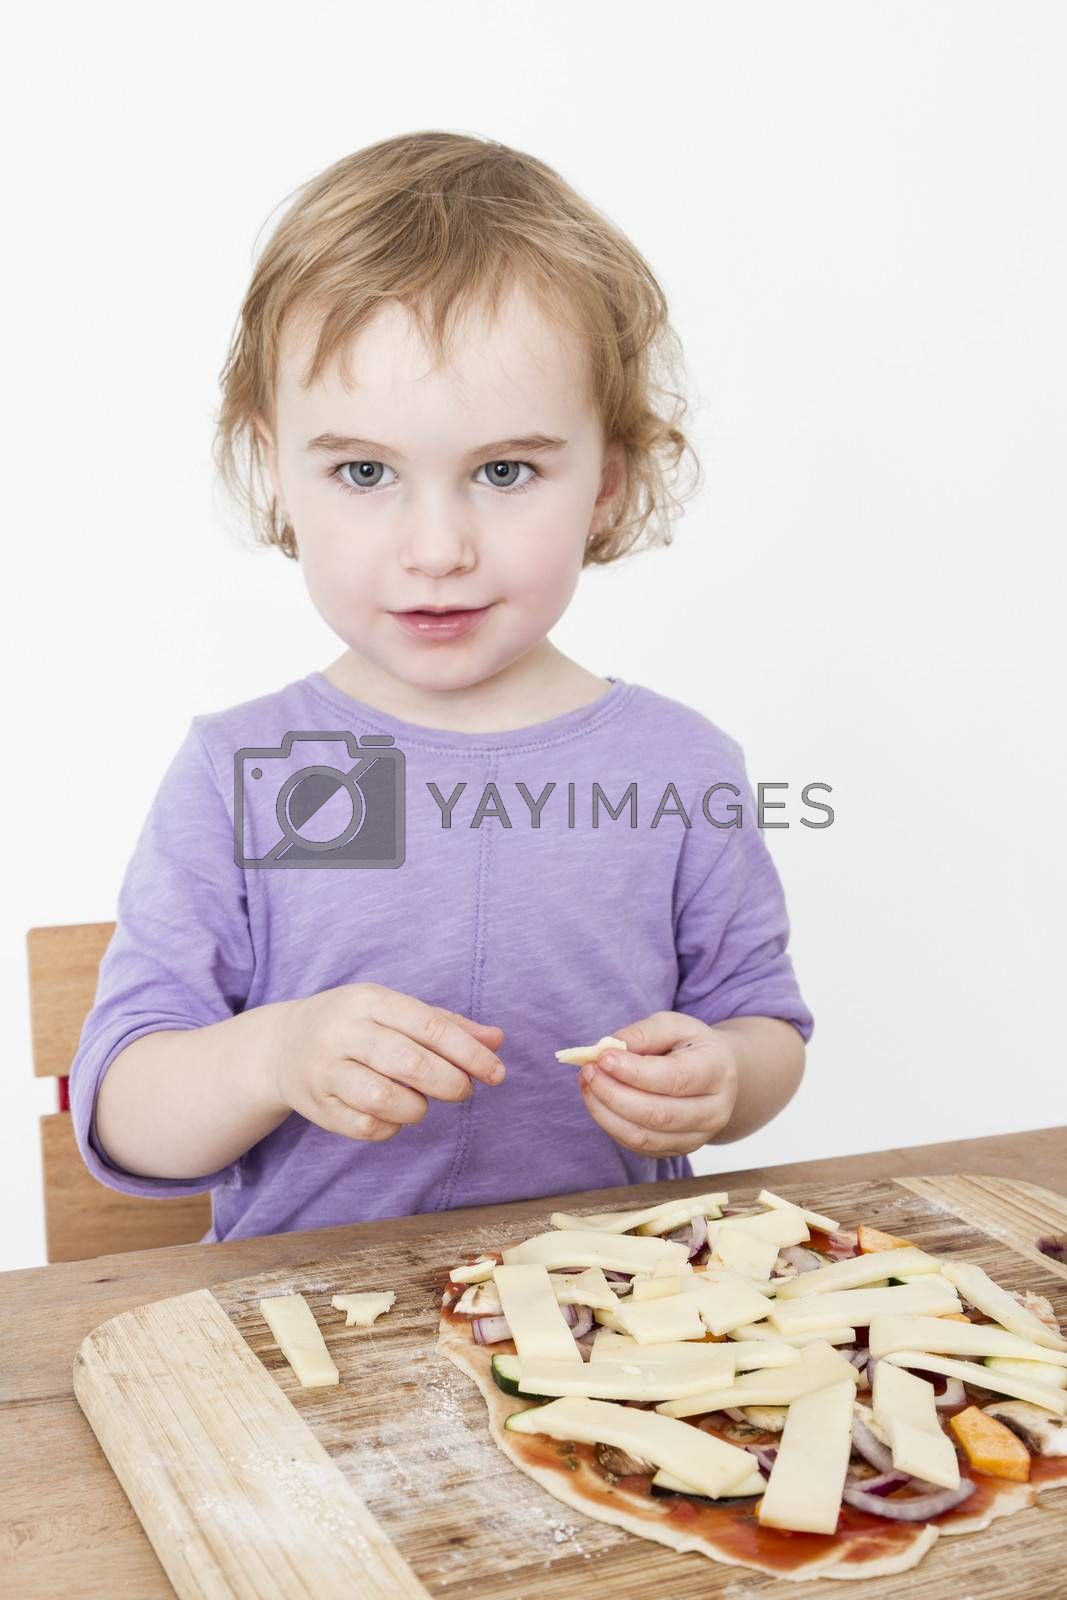 Royalty free image of cute girl making fresh pizza by gewoldi